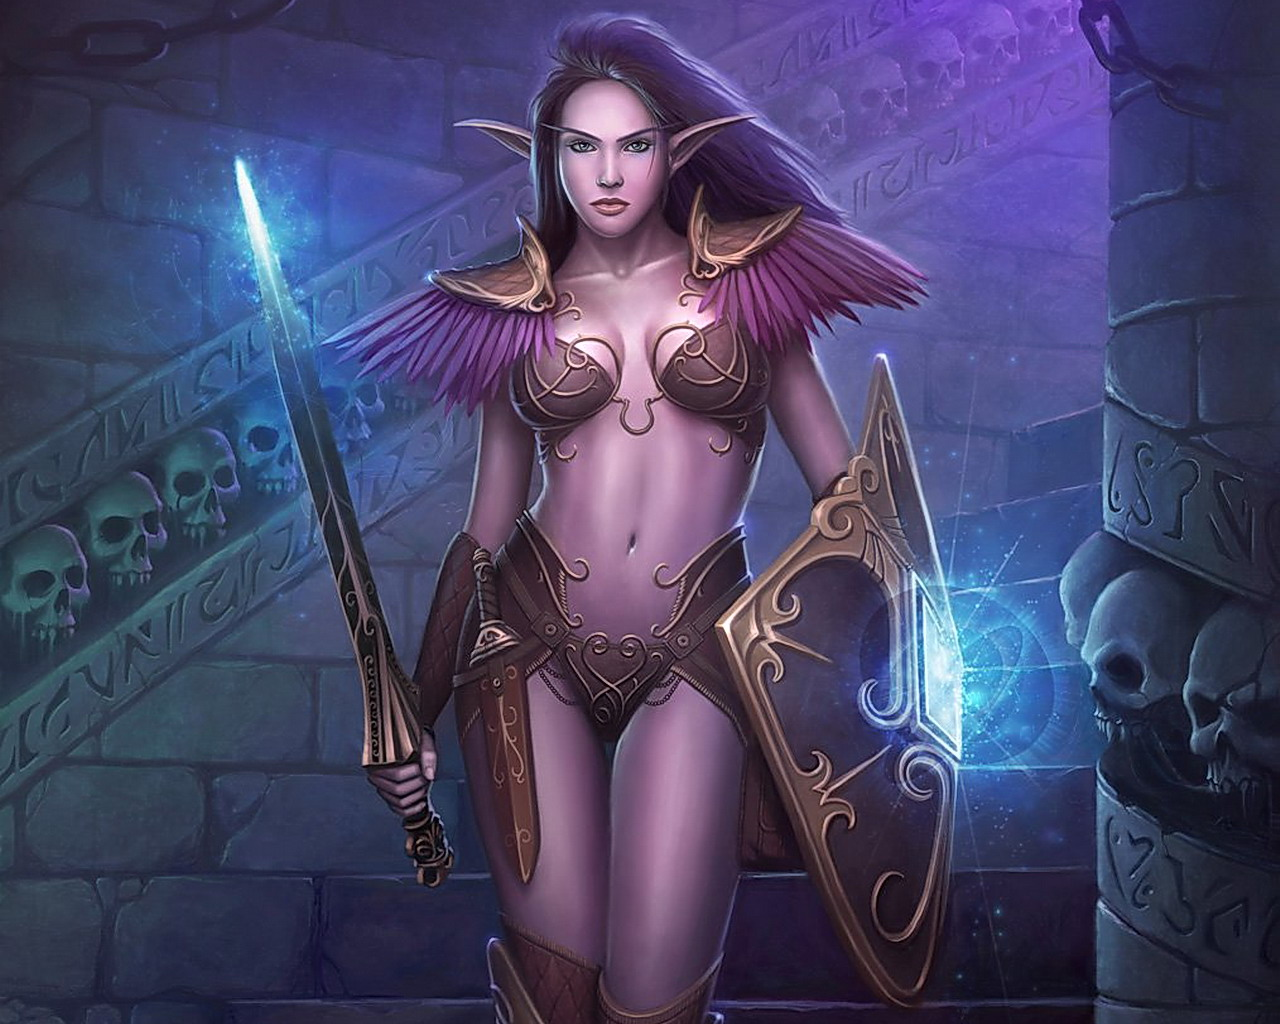 Busty lesbian shemale world of warcraft hentia naked movie